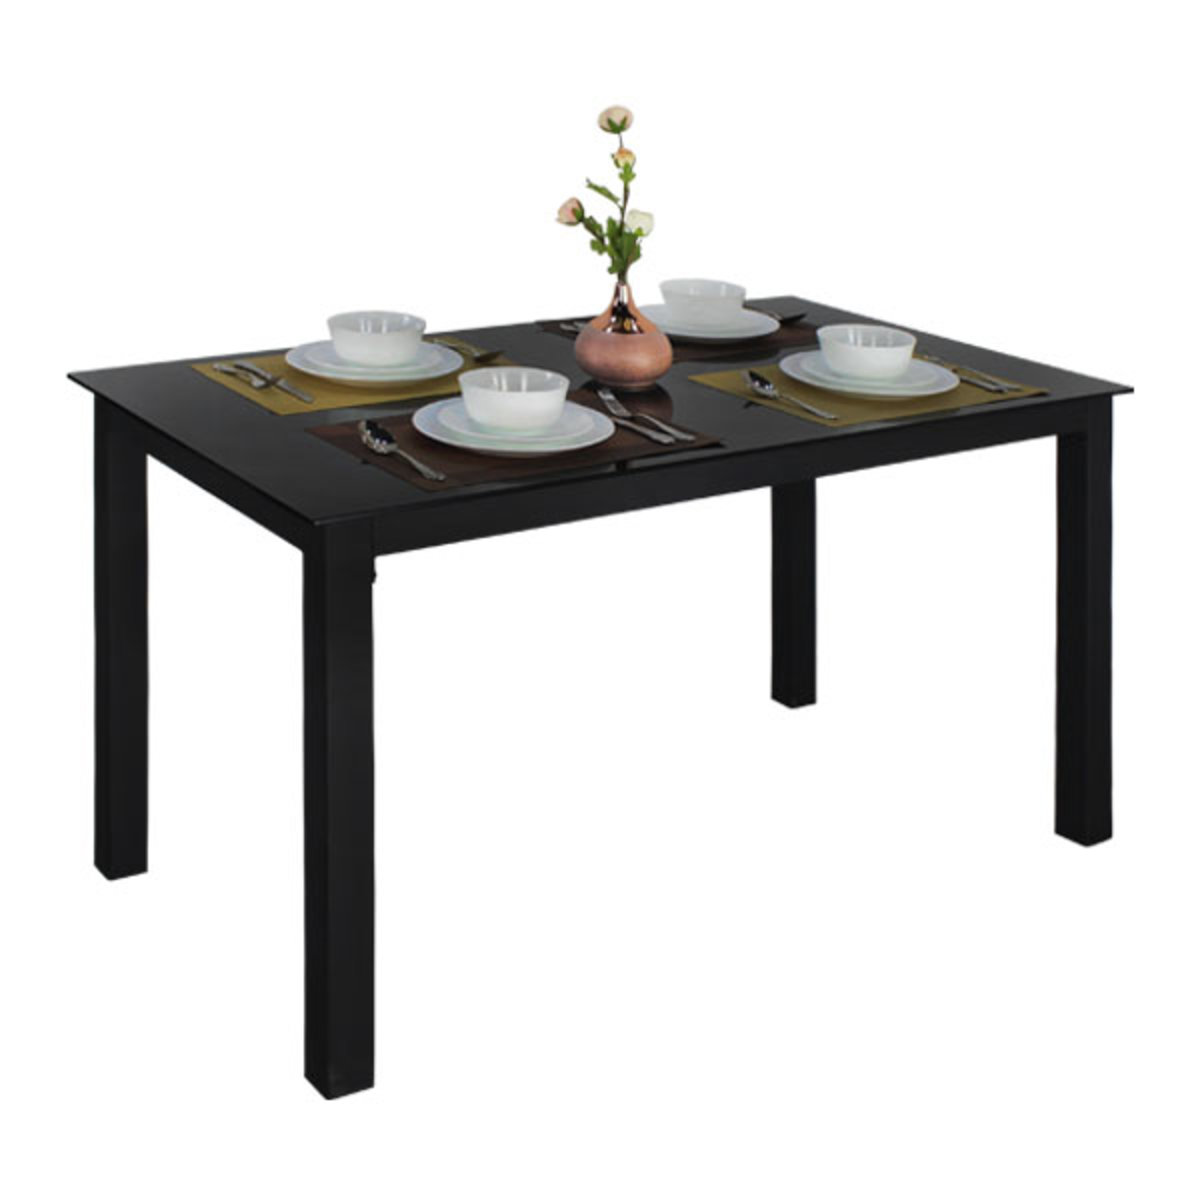 Rectangle Dining Table with Glass Table Top (Black)